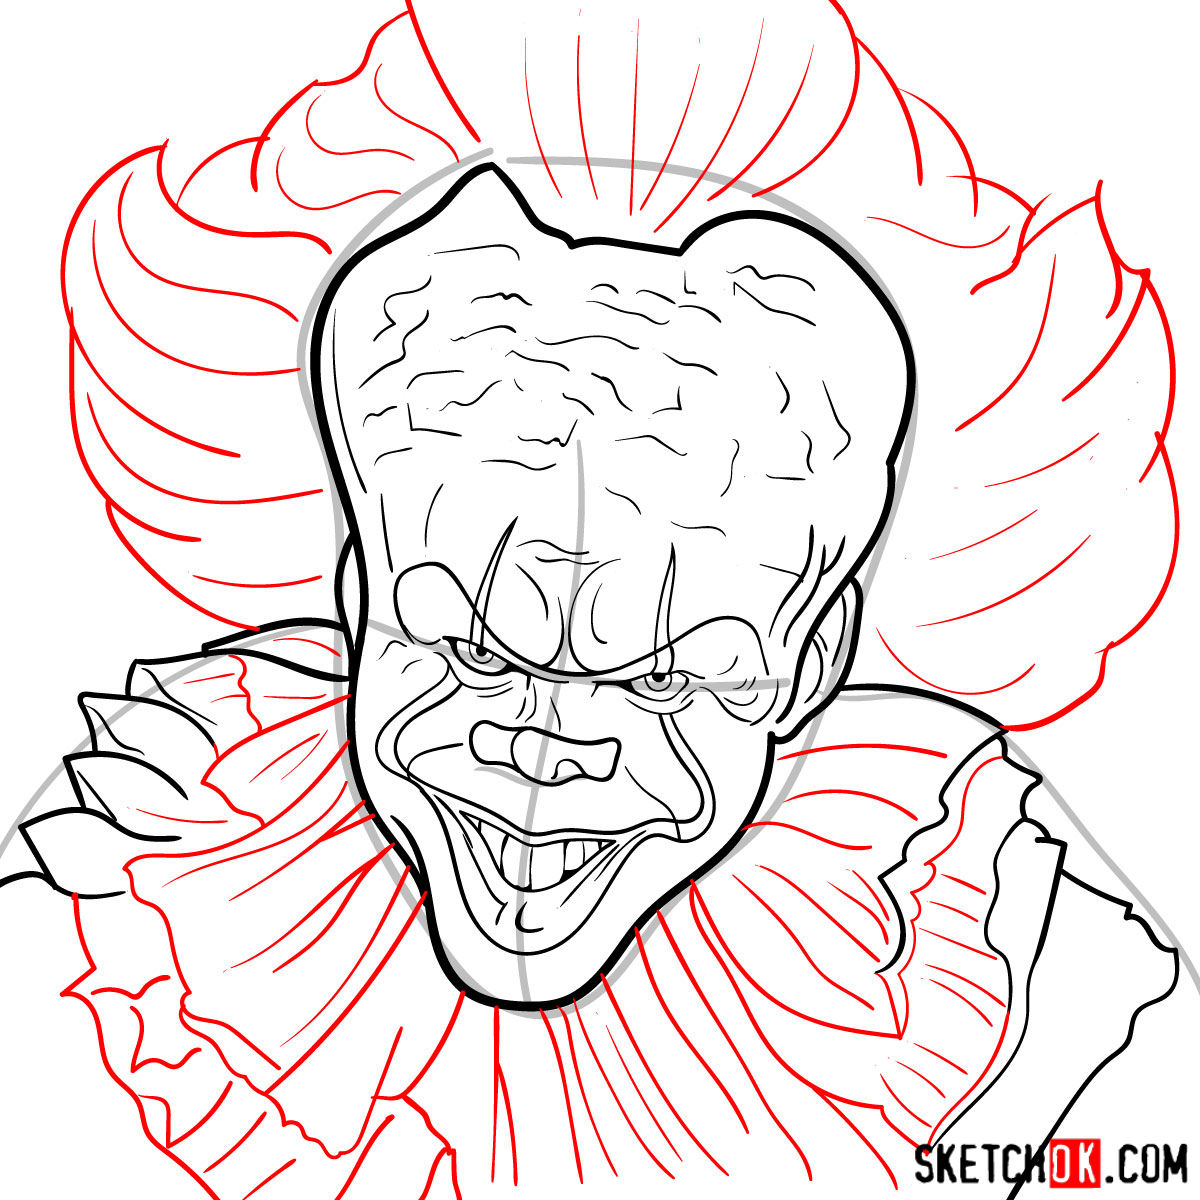 How to draw Pennywise the Dancing Clown step by step - step 10